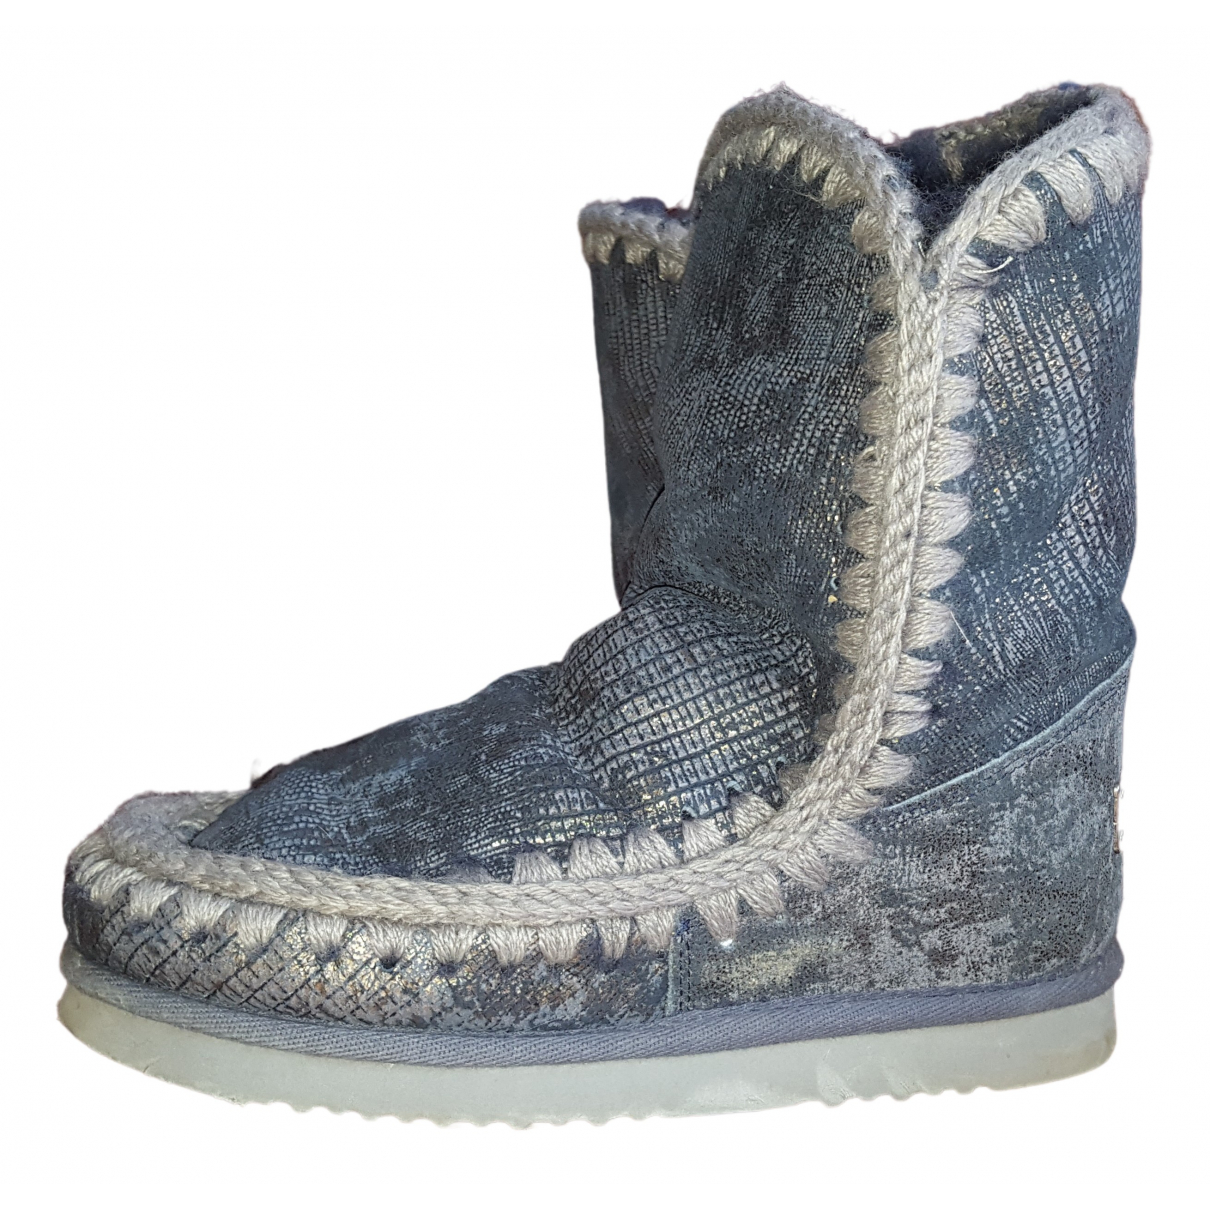 Mou N Blue Glitter Ankle boots for Women 38 EU